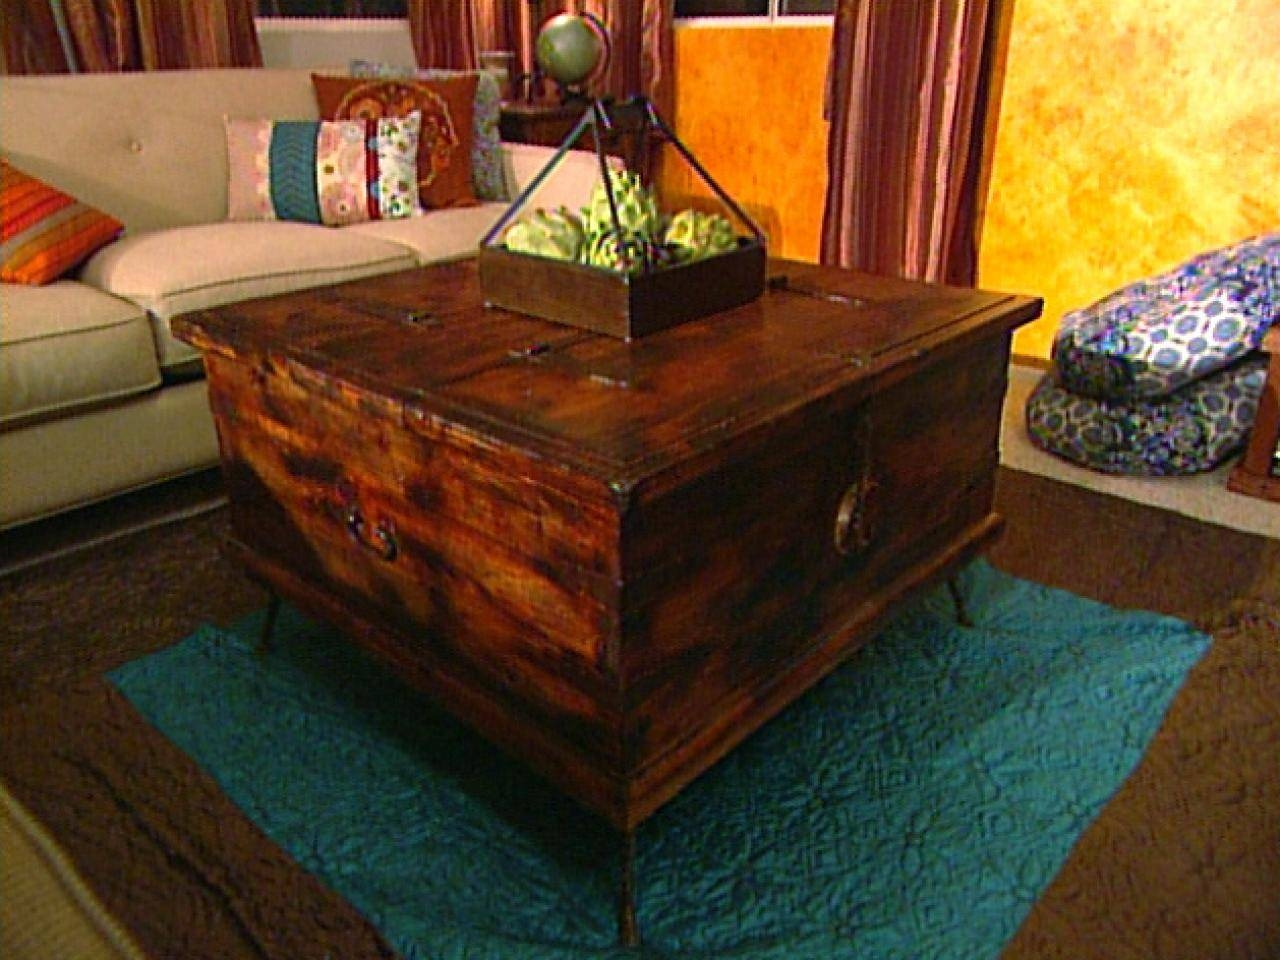 Giving Furniture A Chic Rustic Look | Hgtv with regard to Rustic Style Coffee Tables (Image 19 of 30)